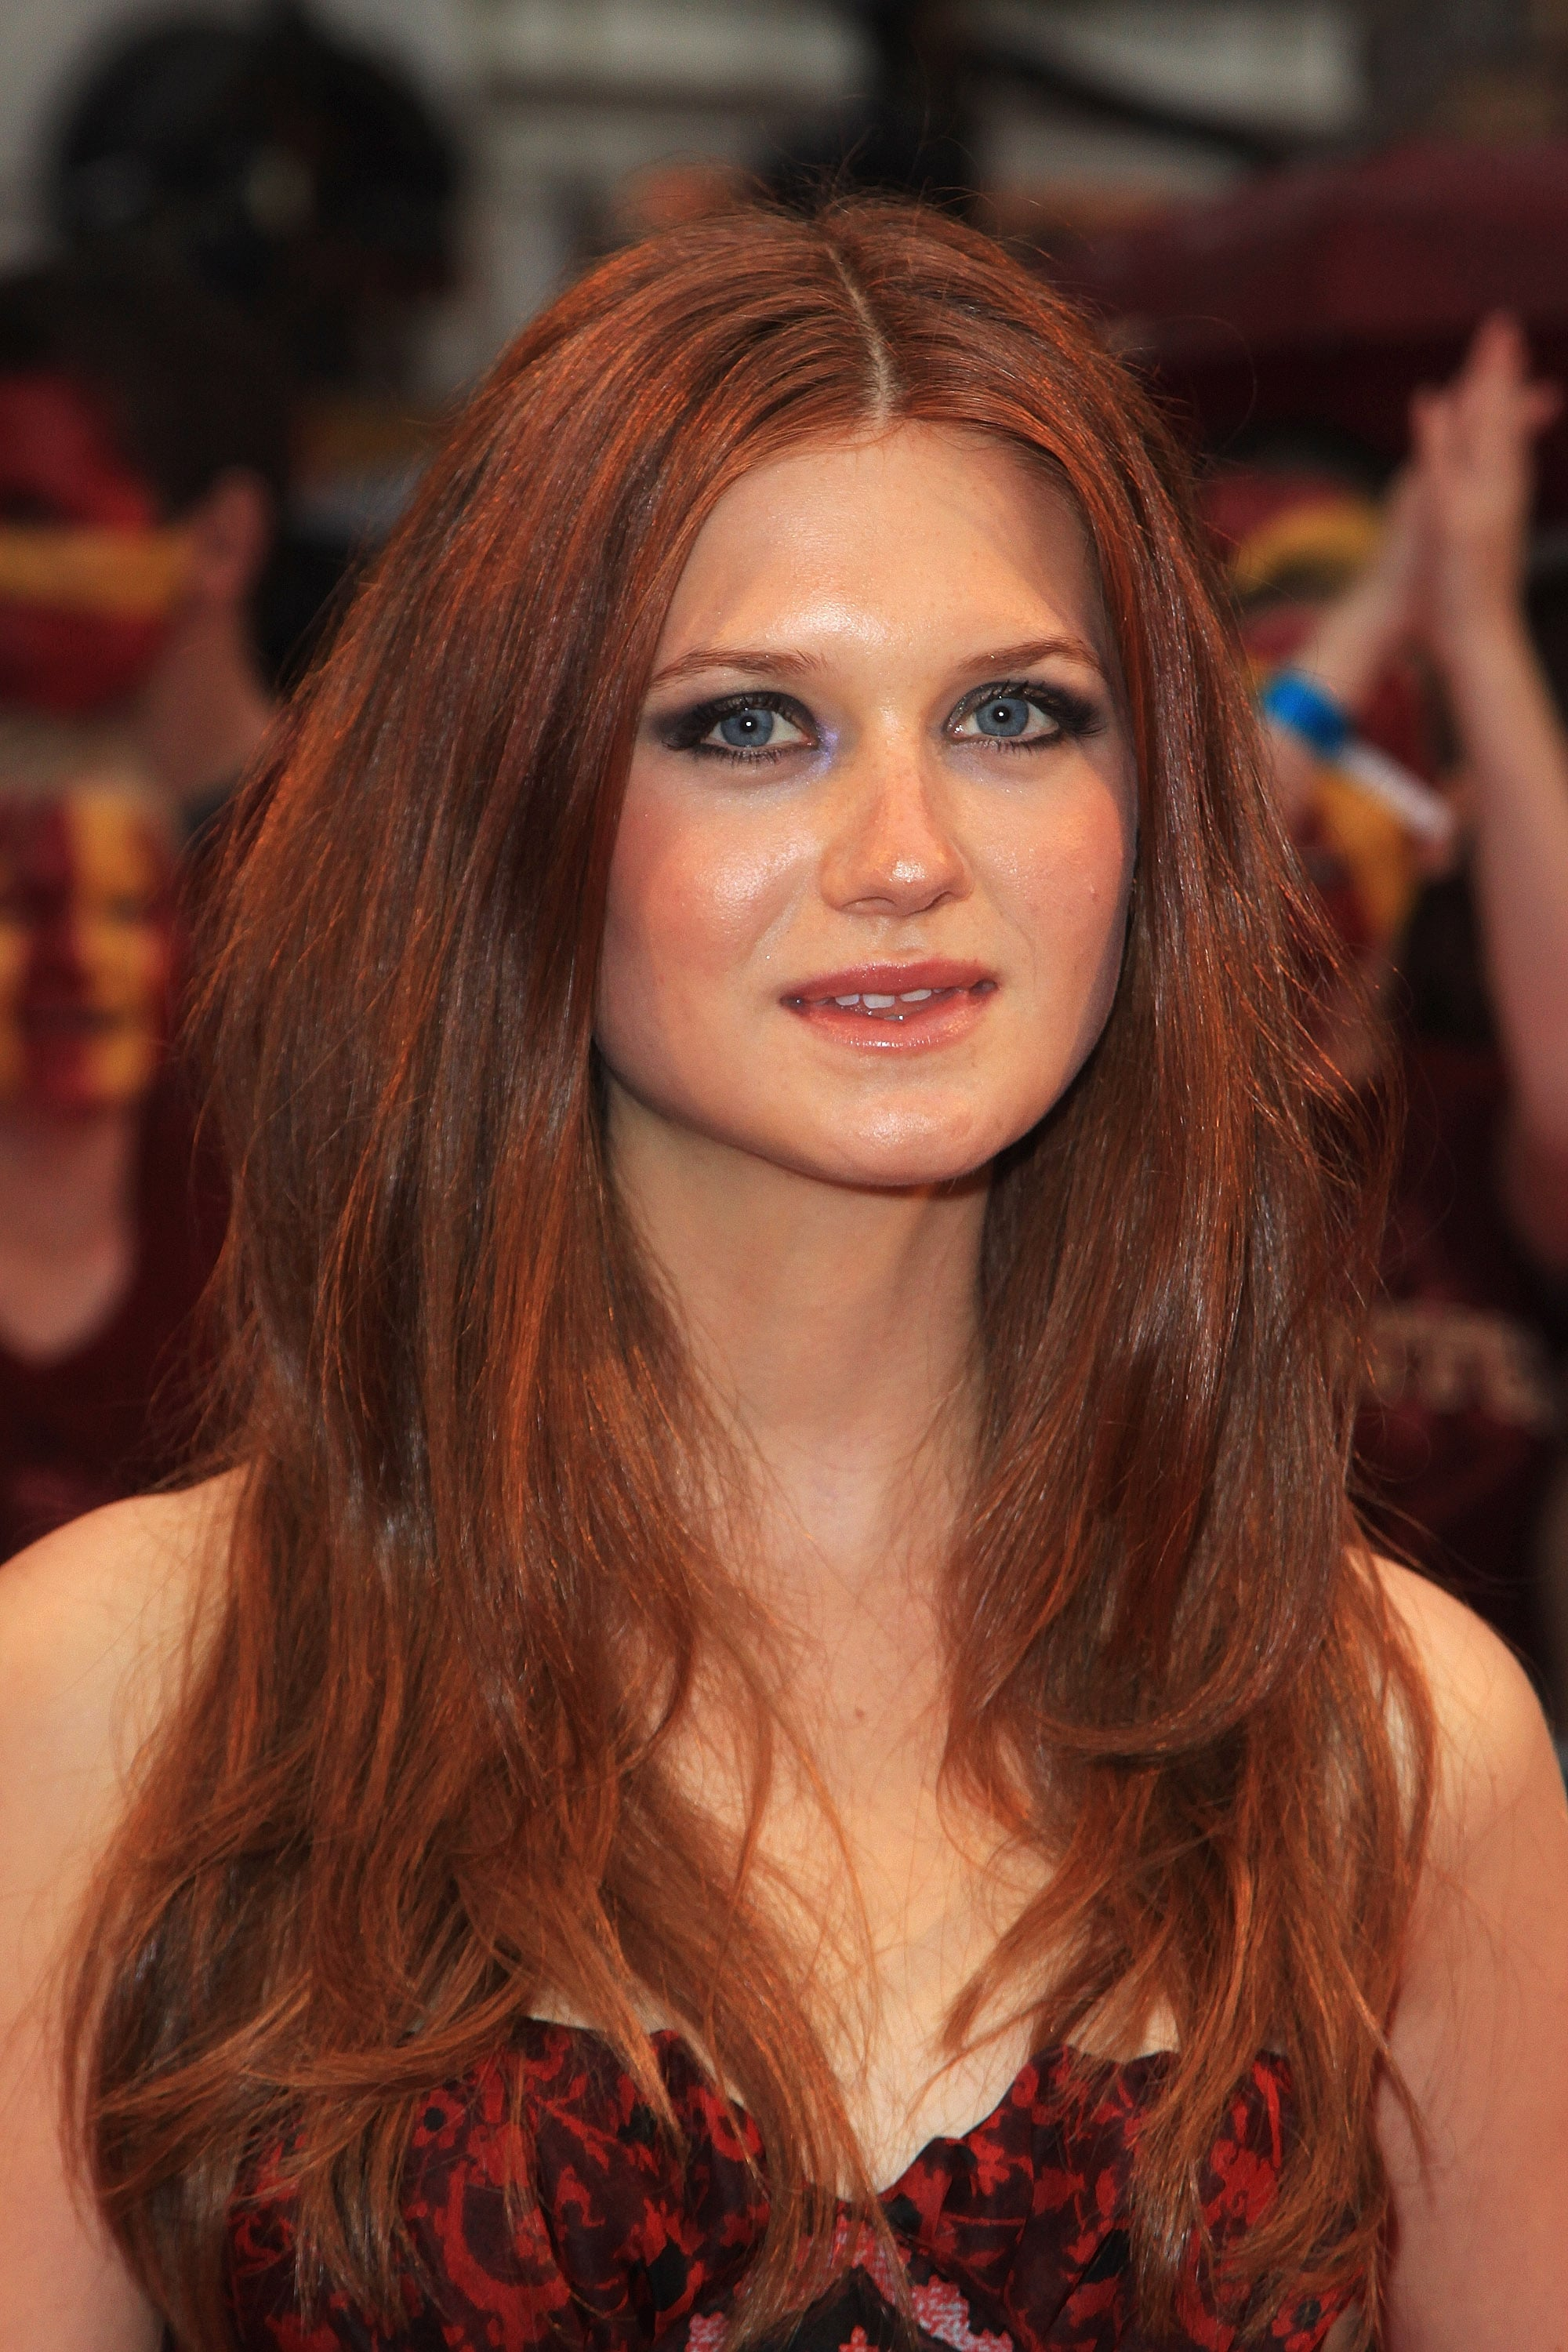 Ginerva weasley nude softcore download